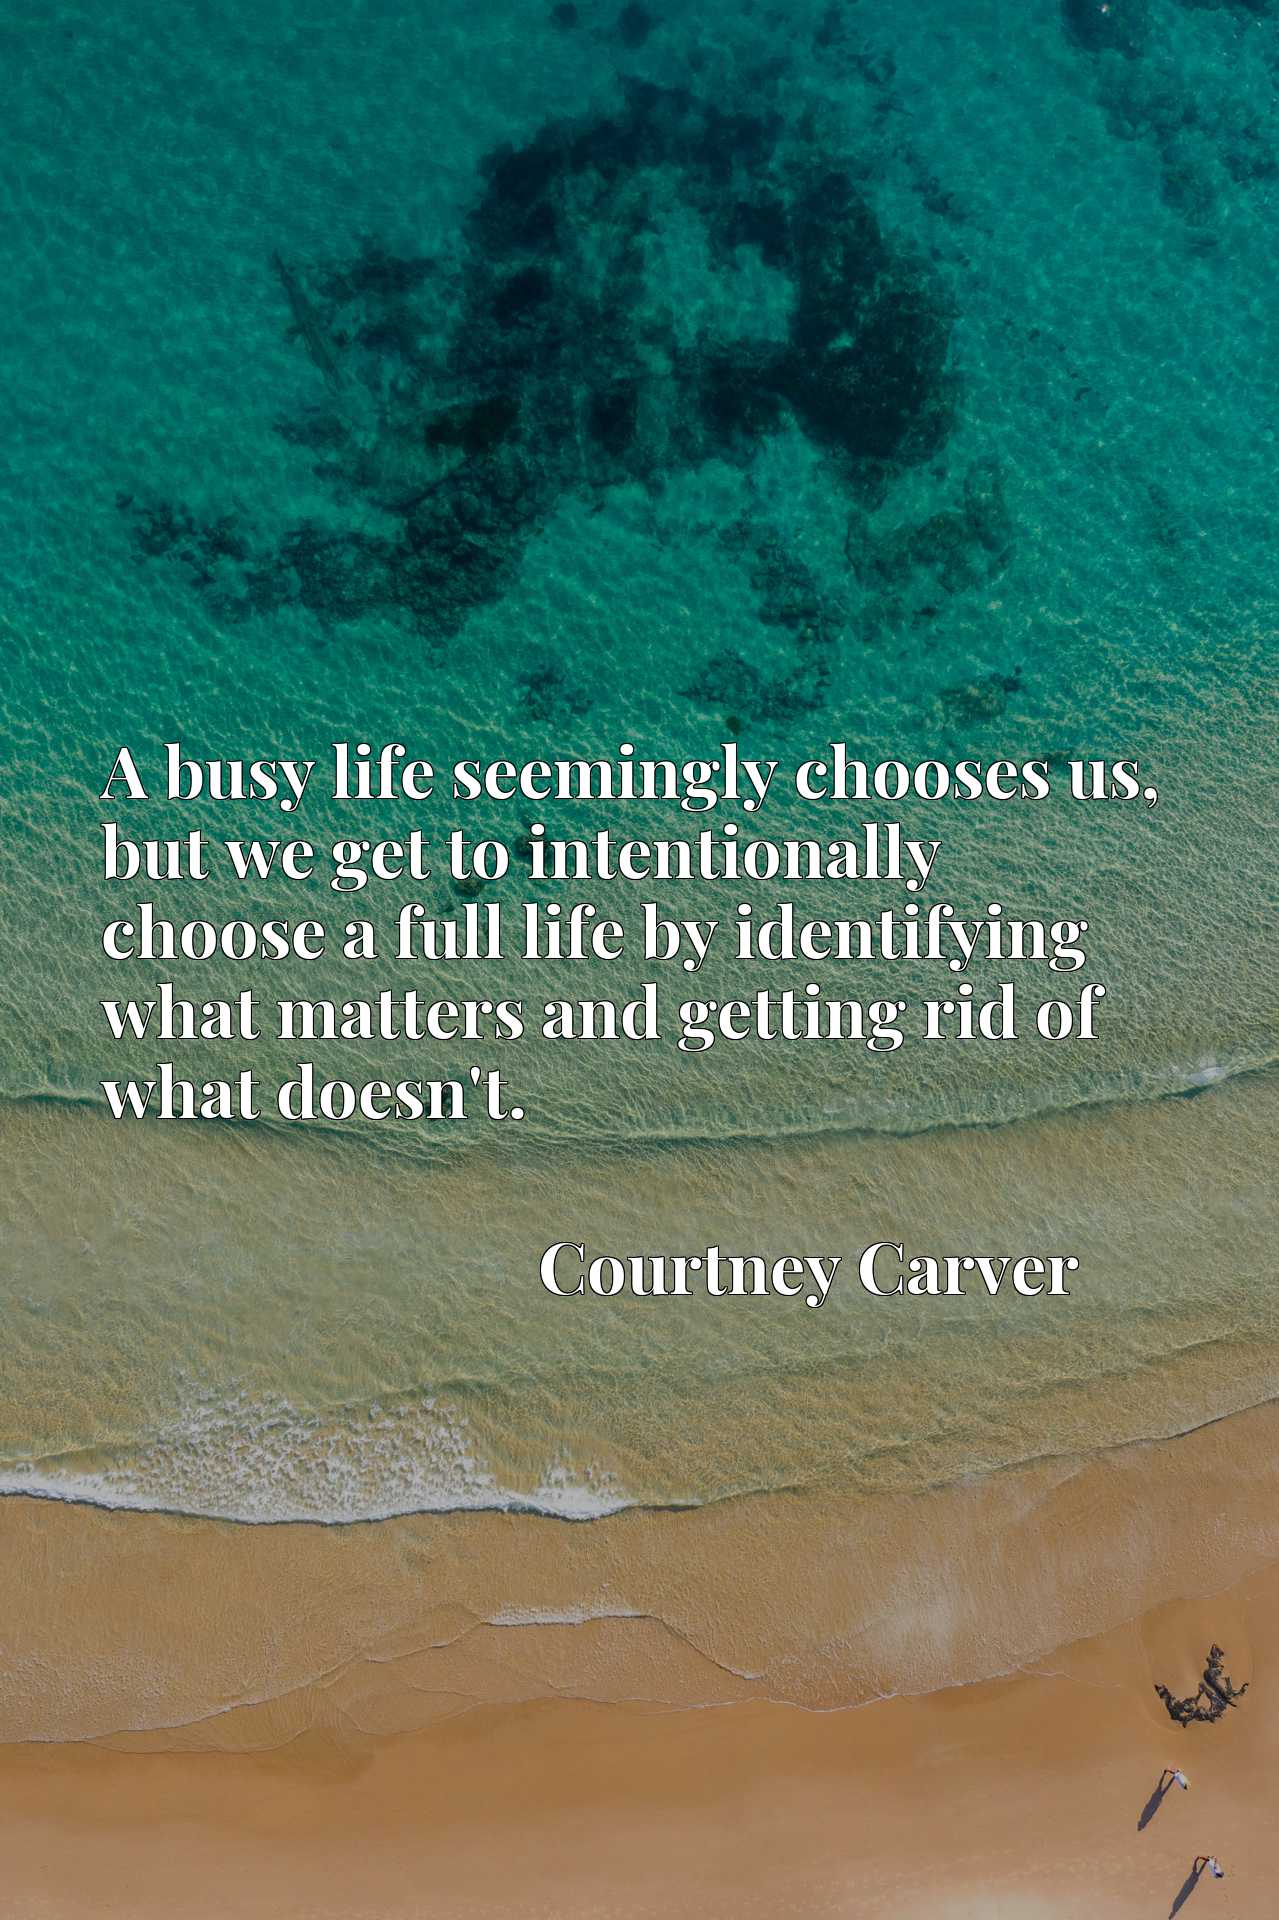 A busy life seemingly chooses us, but we get to intentionally choose a full life by identifying what matters and getting rid of what doesn't.